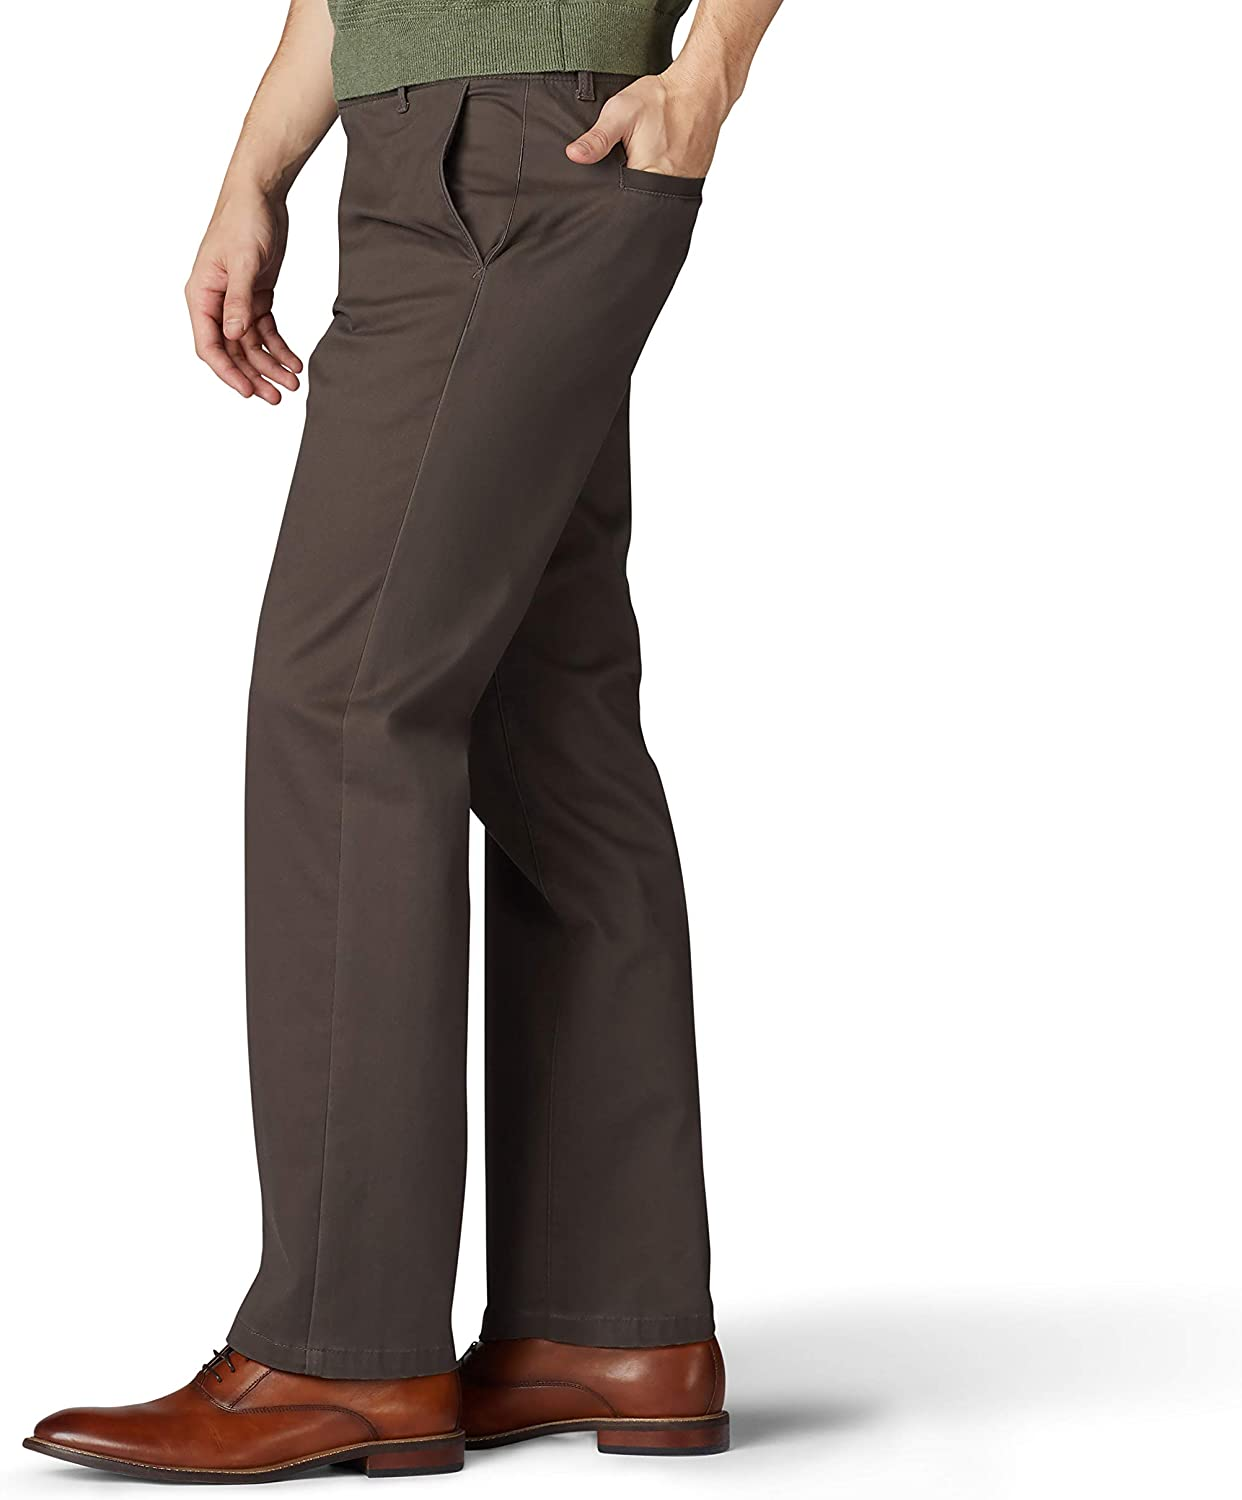 LEE Mens Performance Series Extreme Comfort Straight Fit Pant